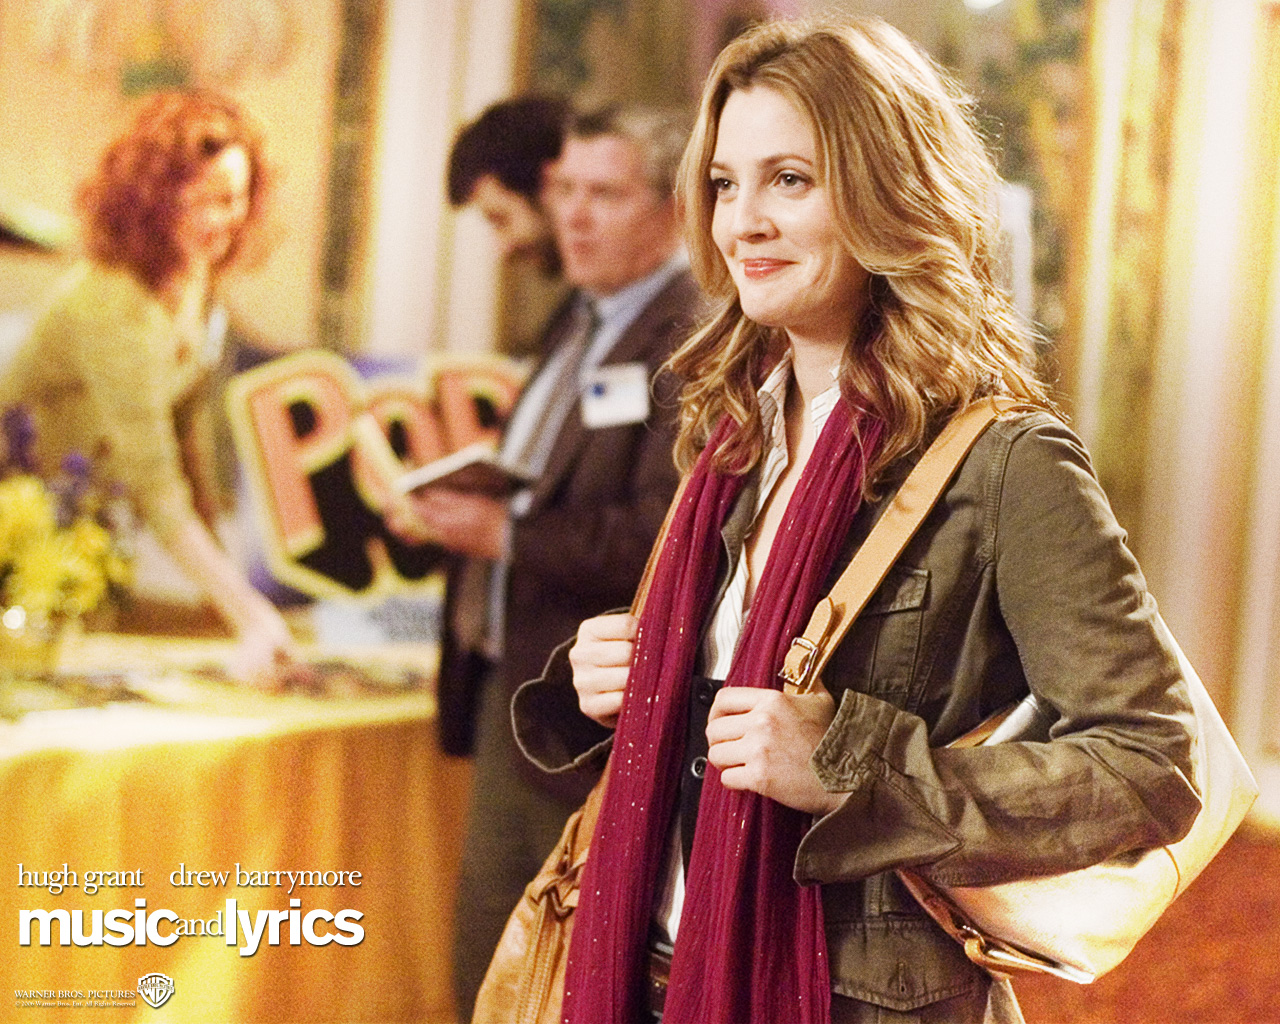 http://3.bp.blogspot.com/-56vQuTBPVgk/TxE_PPfv0DI/AAAAAAAAEUw/gQfCH7CzBOU/s1600/Drew_Barrymore_in_Music_and_Lyrics_Wallpaper_3_1280.jpg